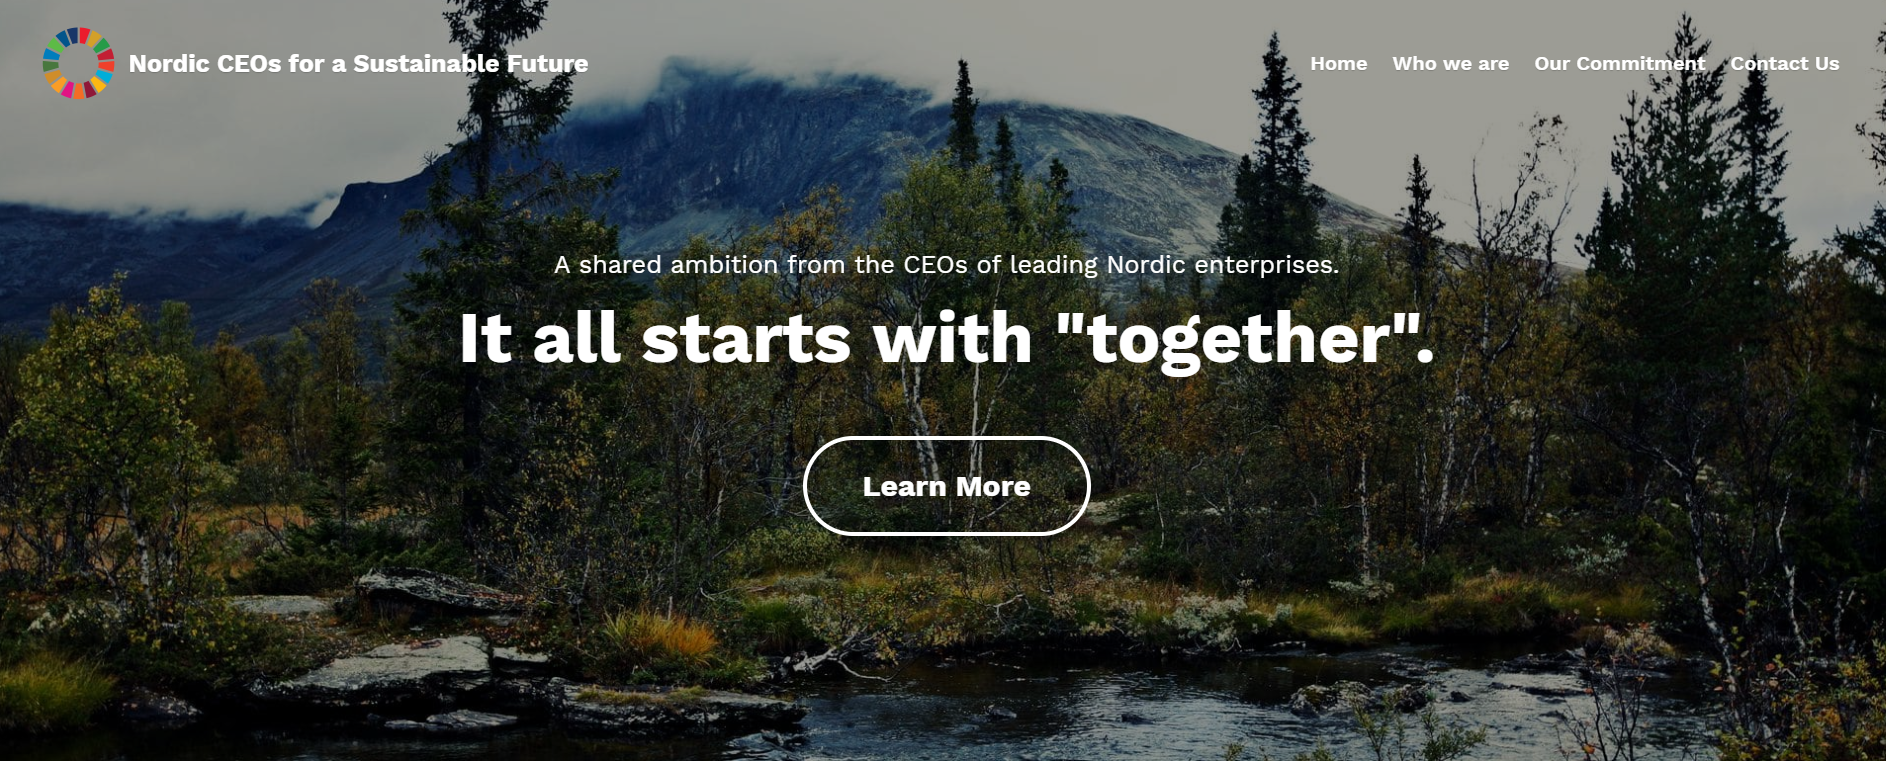 Nordic CEOs for Sustainable Future